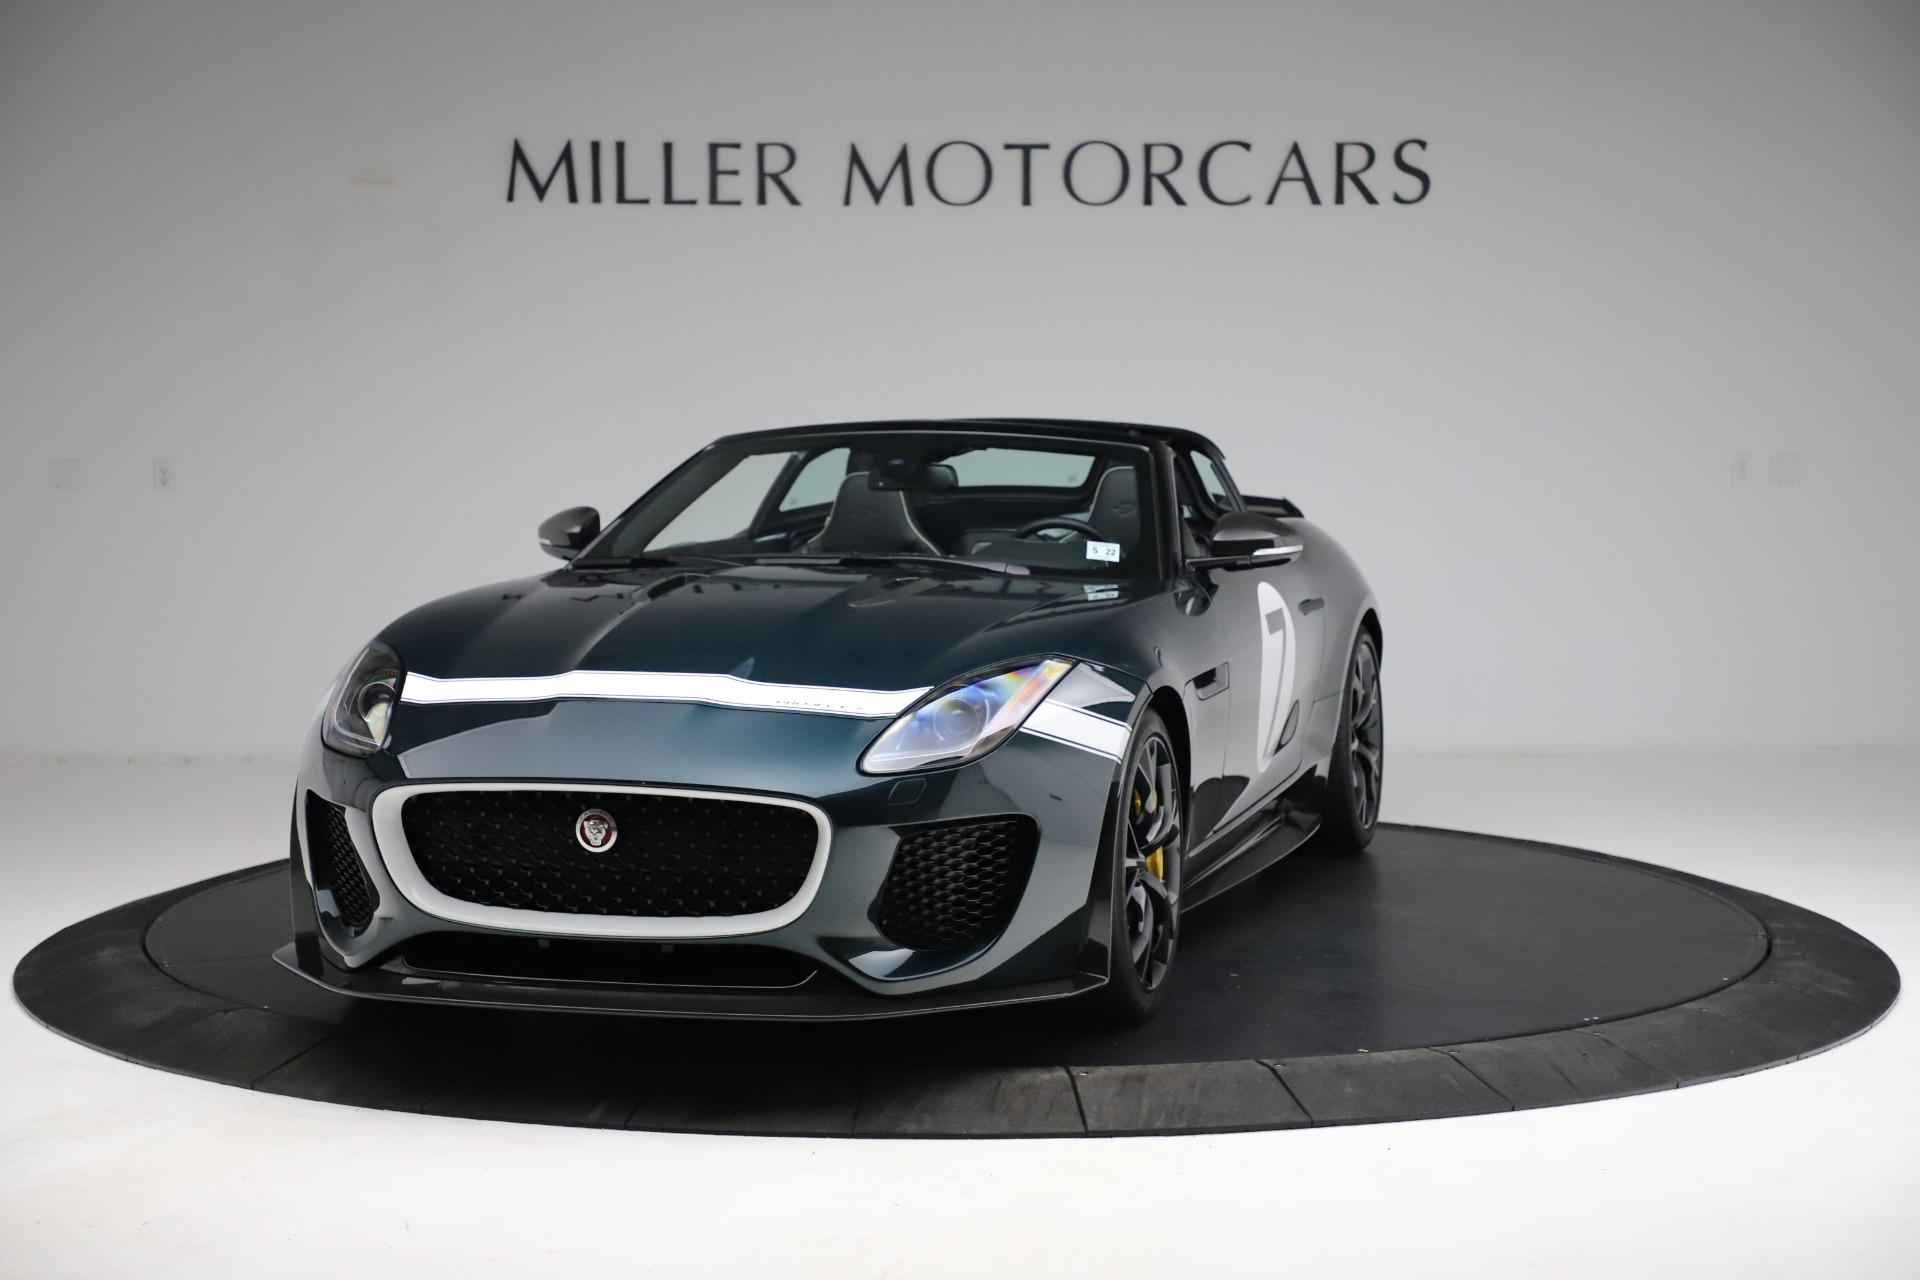 Used 2016 Jaguar F-TYPE Project 7 for sale $225,900 at McLaren Greenwich in Greenwich CT 06830 1